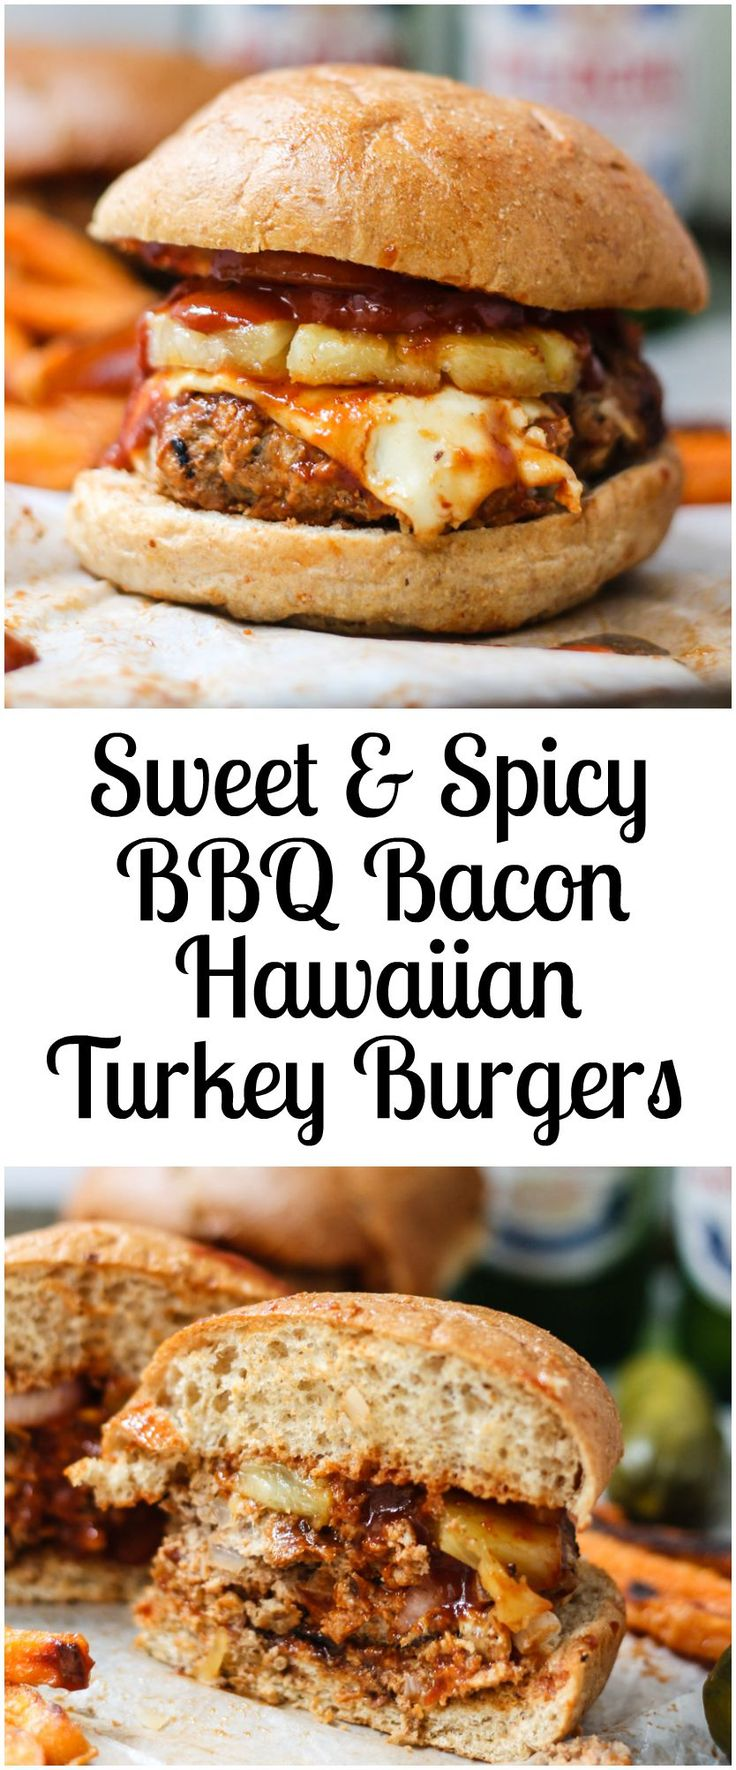 ... Turkey Burgers on Pinterest | Turkey Burgers, Ground Turkey and Burger